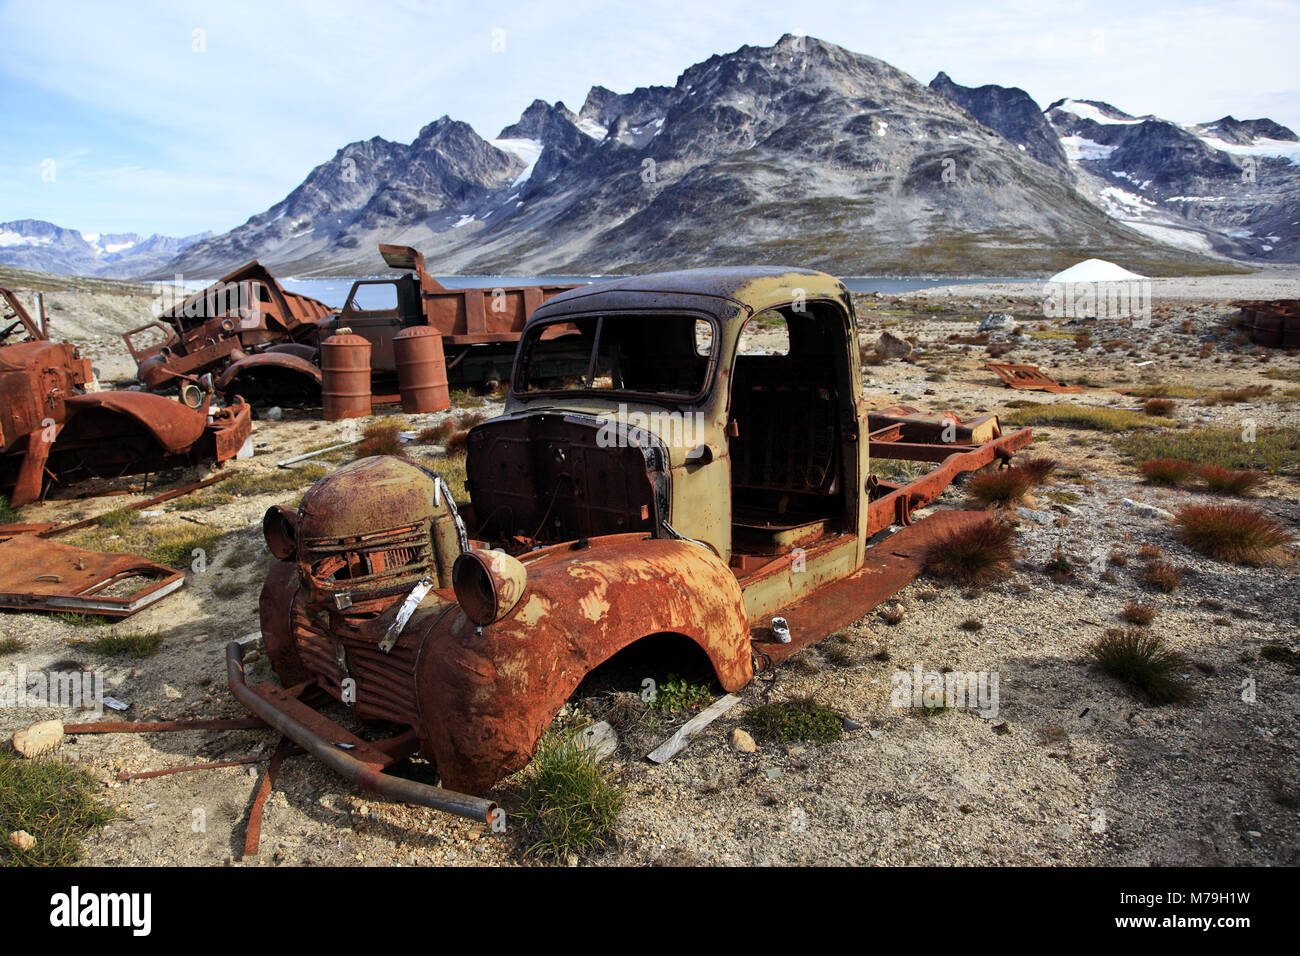 Greenland, East Greenland, area of Ammassalik, the former US military base, military base, scrap metal, garbage, - Stock Image